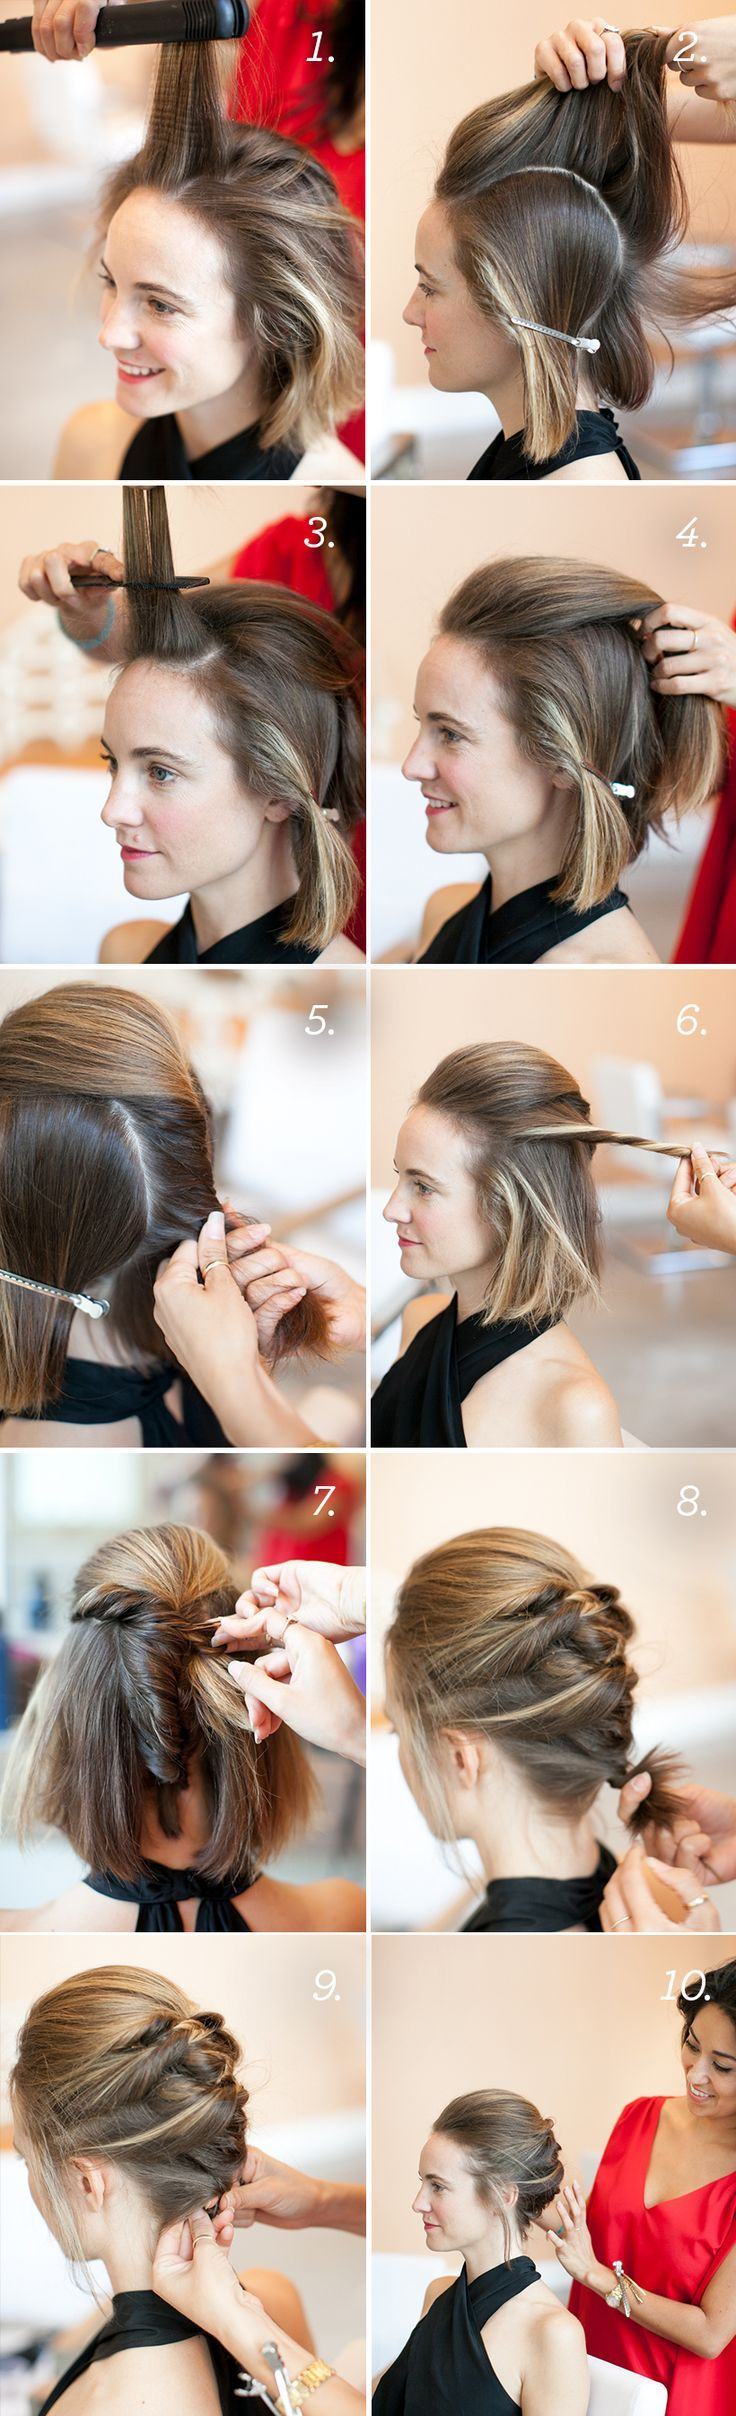 124 best short hair styles images on pinterest | hairstyles, short